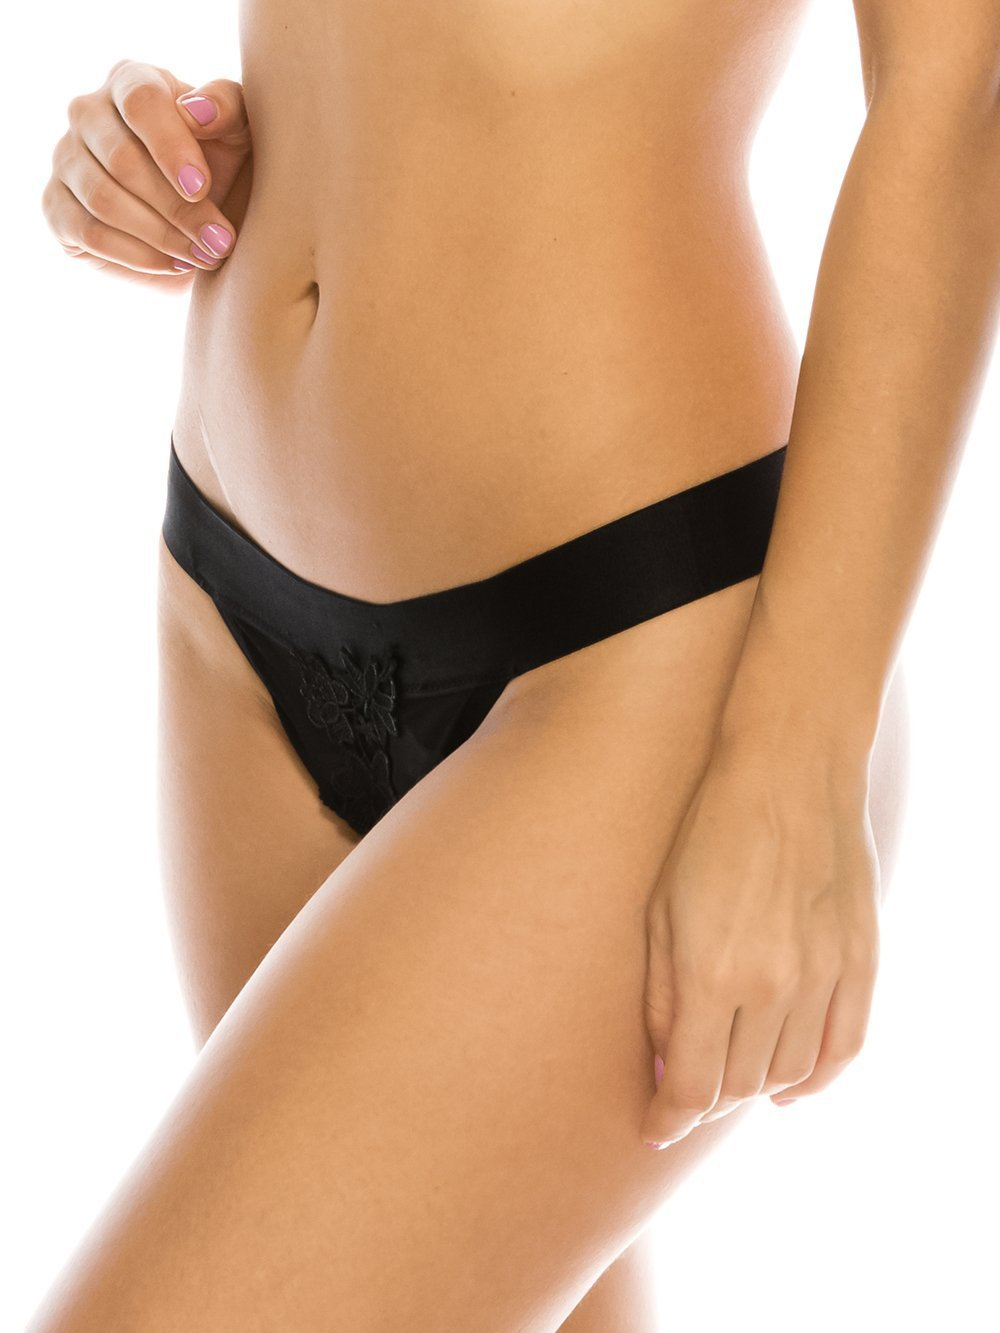 Sheer & Floral Embroidery Thong - Youmita Lingerie